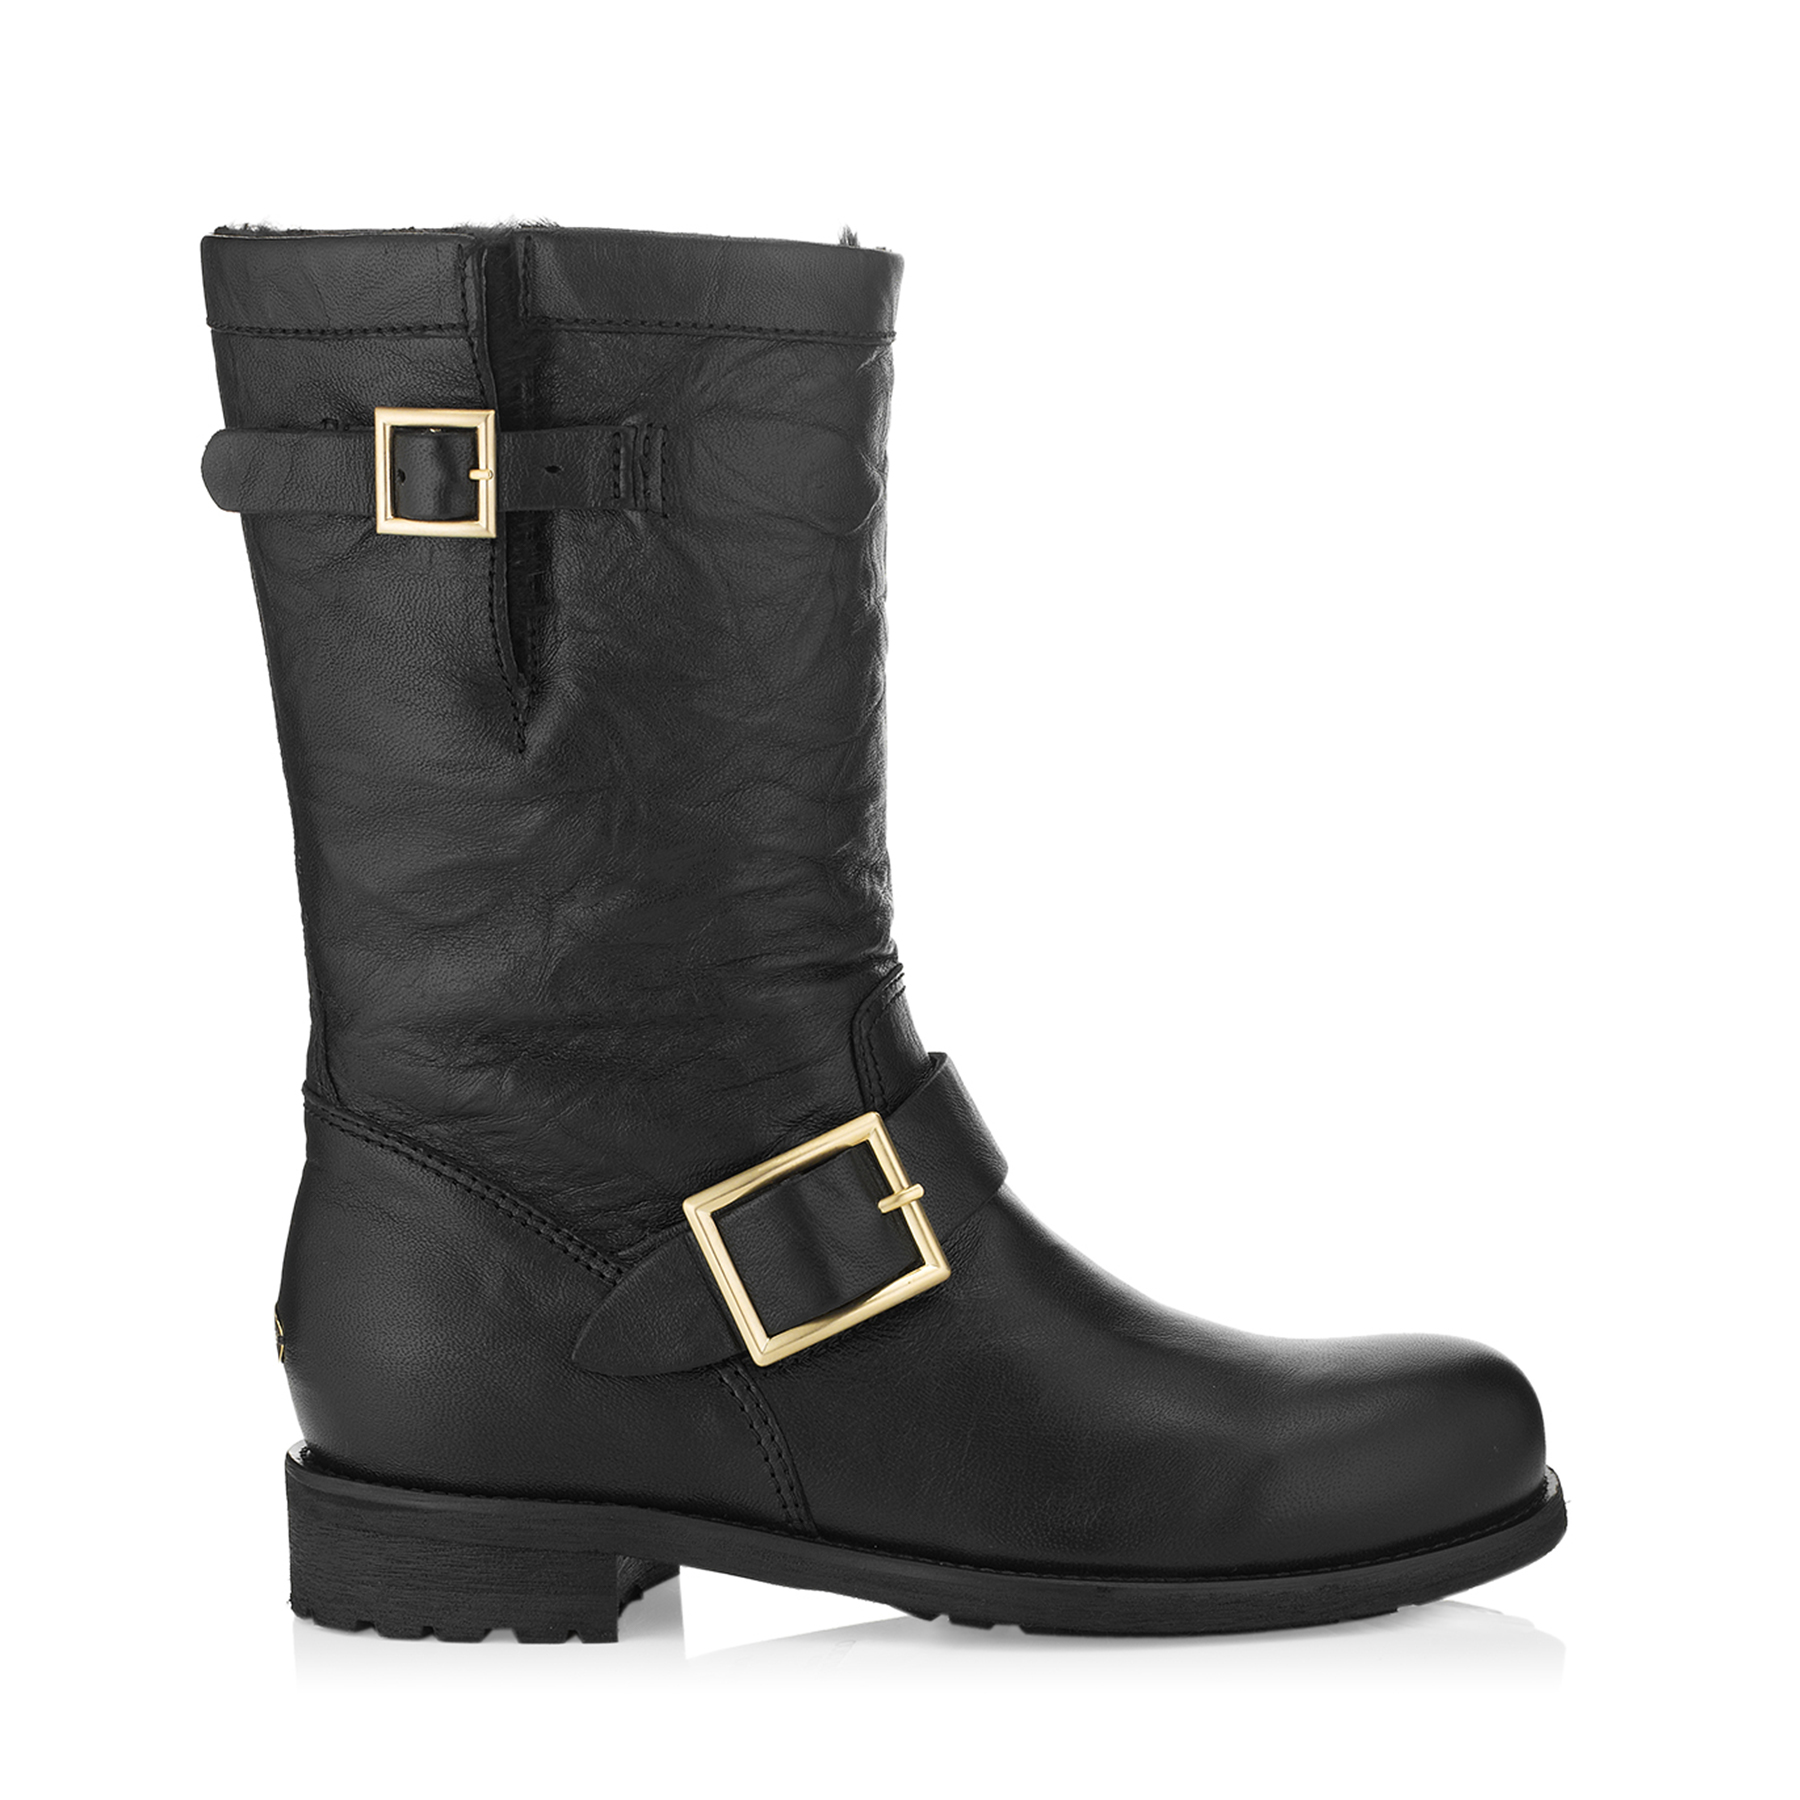 BIKER - LINED Black Biker Leather Biker Boots with Rabbit Fur by Jimmy Choo